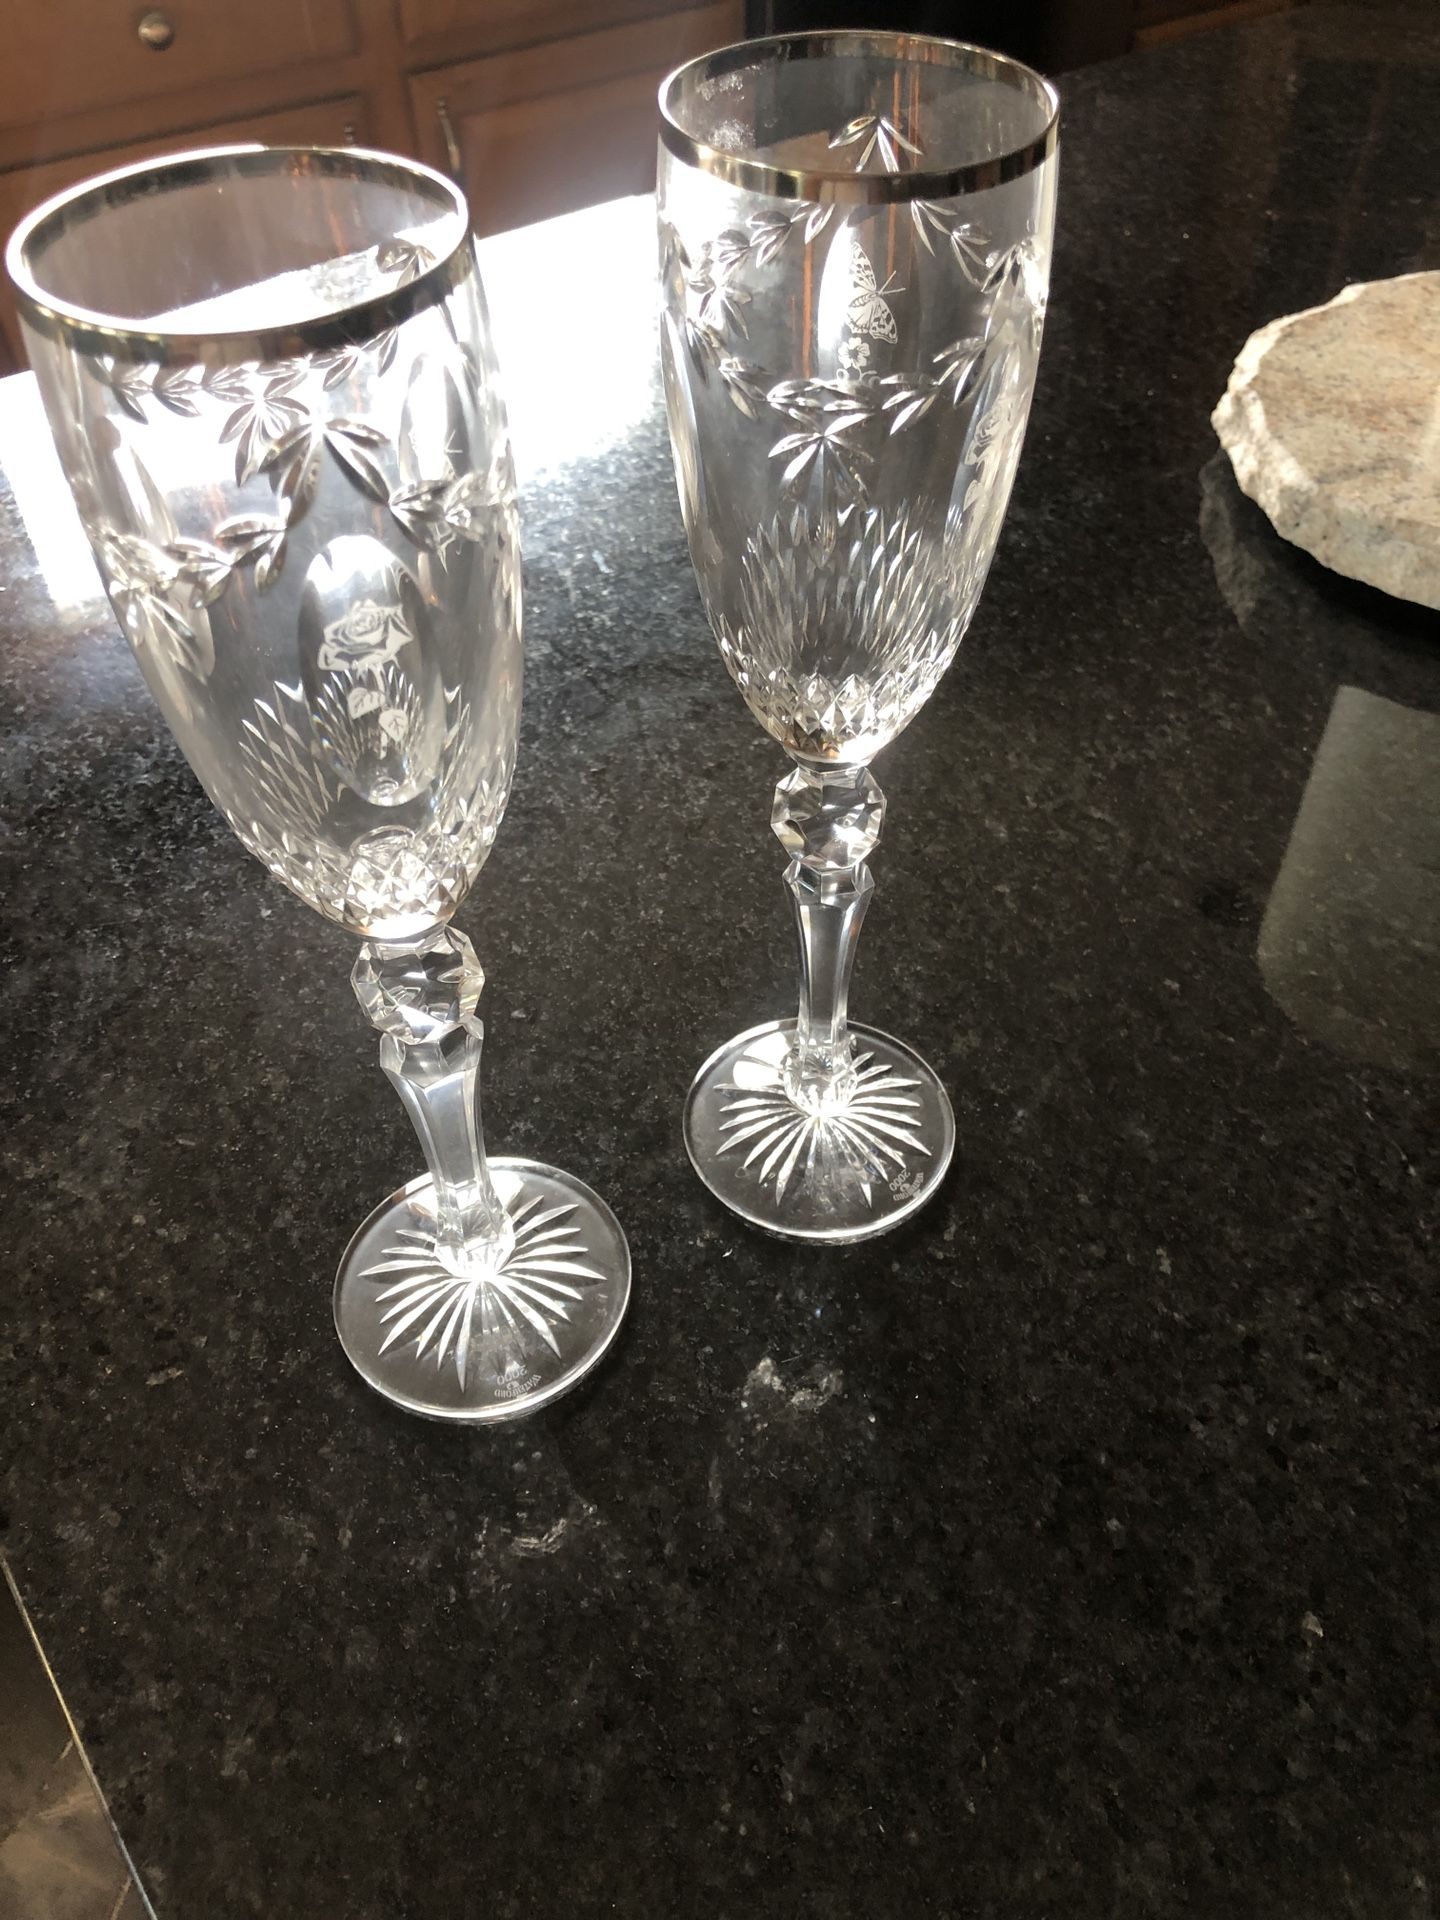 Cherished Moments Waterford Crystal Toasting Flutes LIMITED EDITION